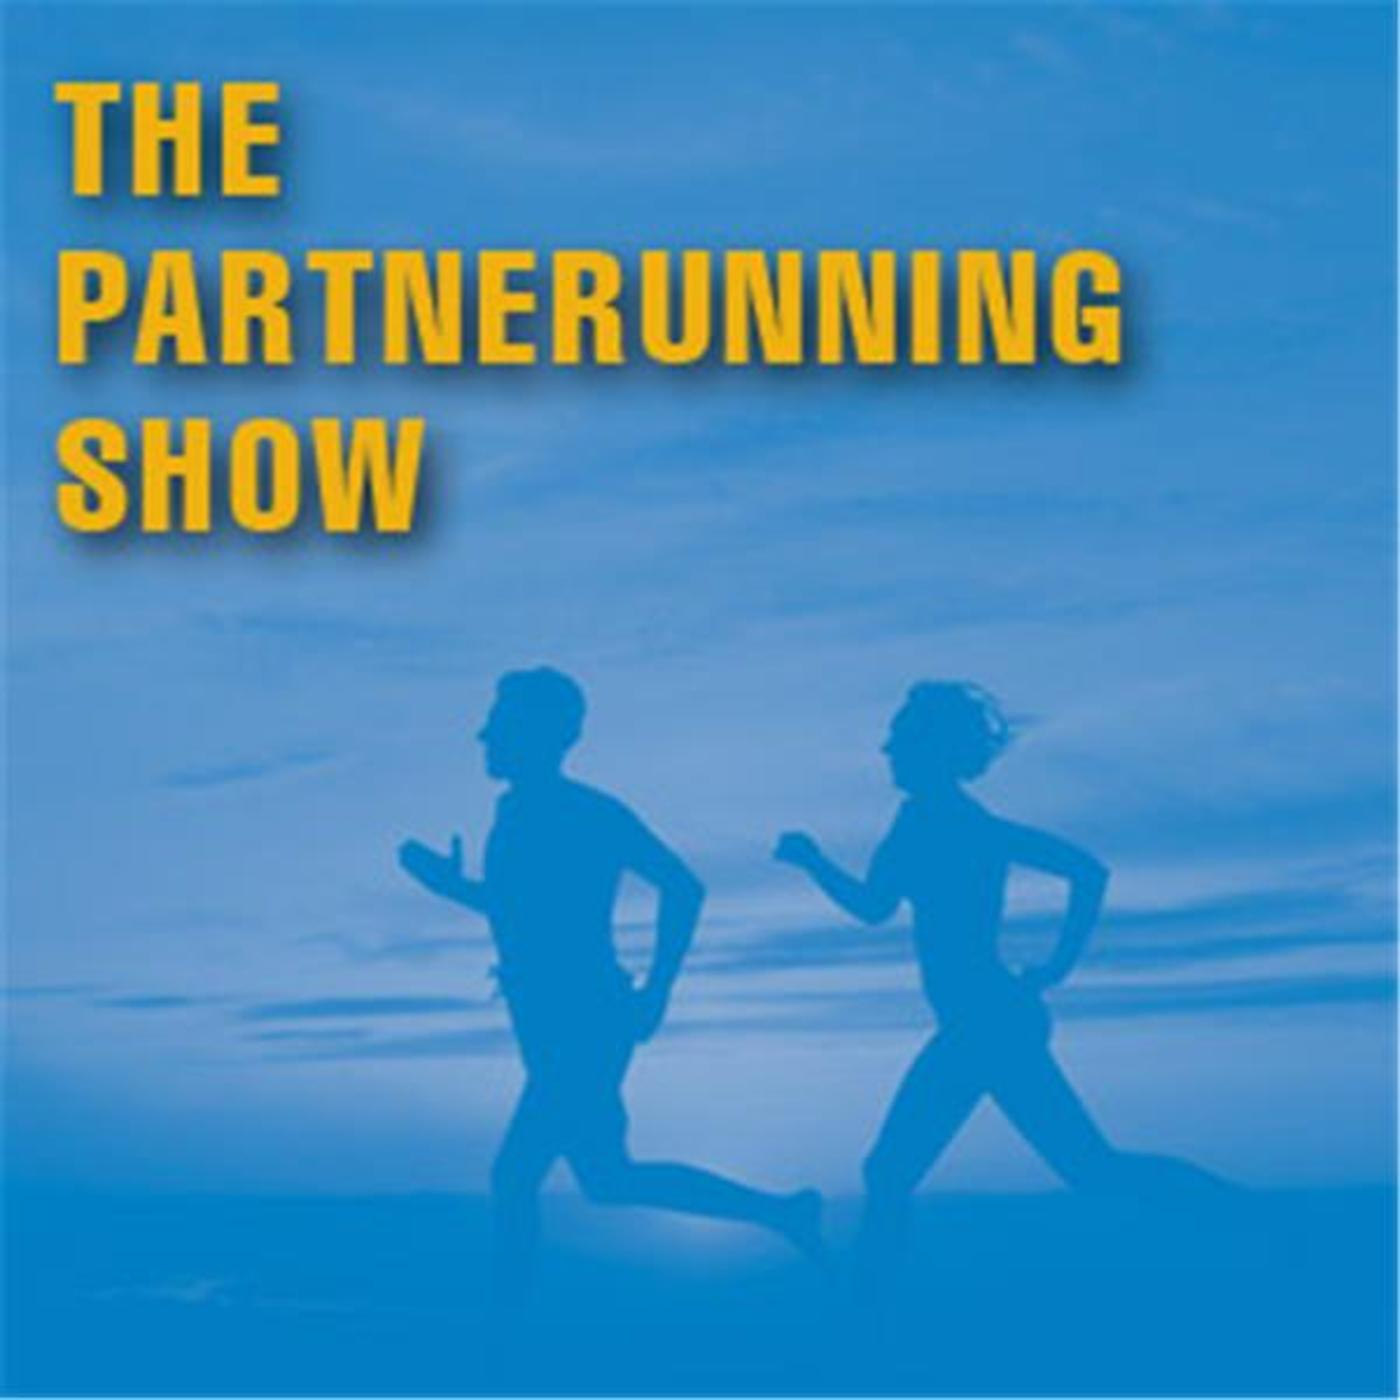 The Partnerunning Show